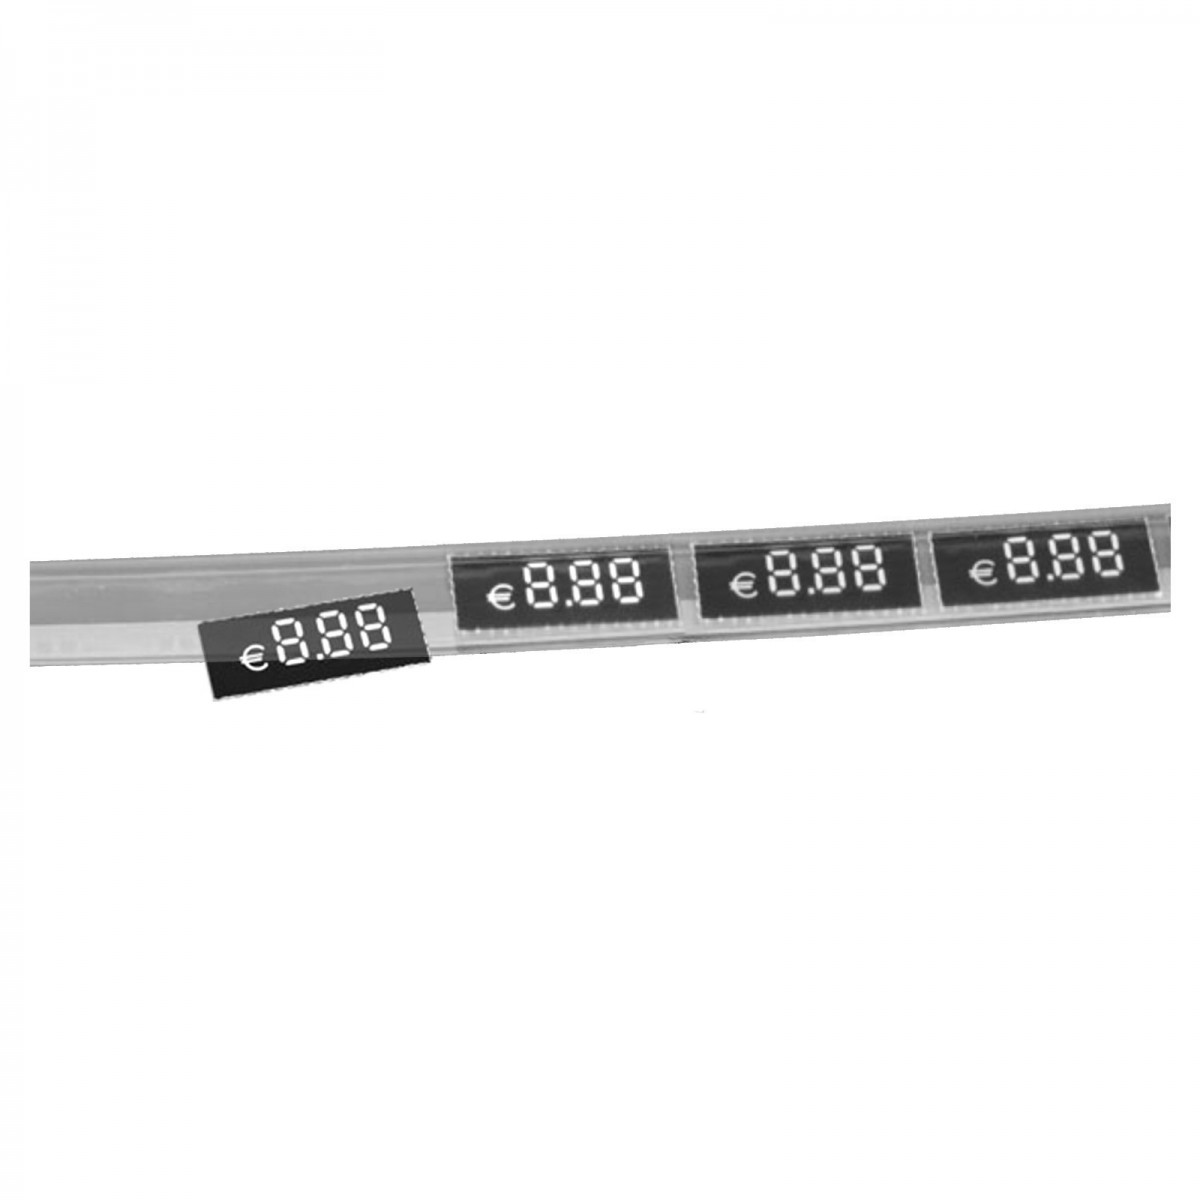 Self Adhesive Mounting Board With 20 Price Labels